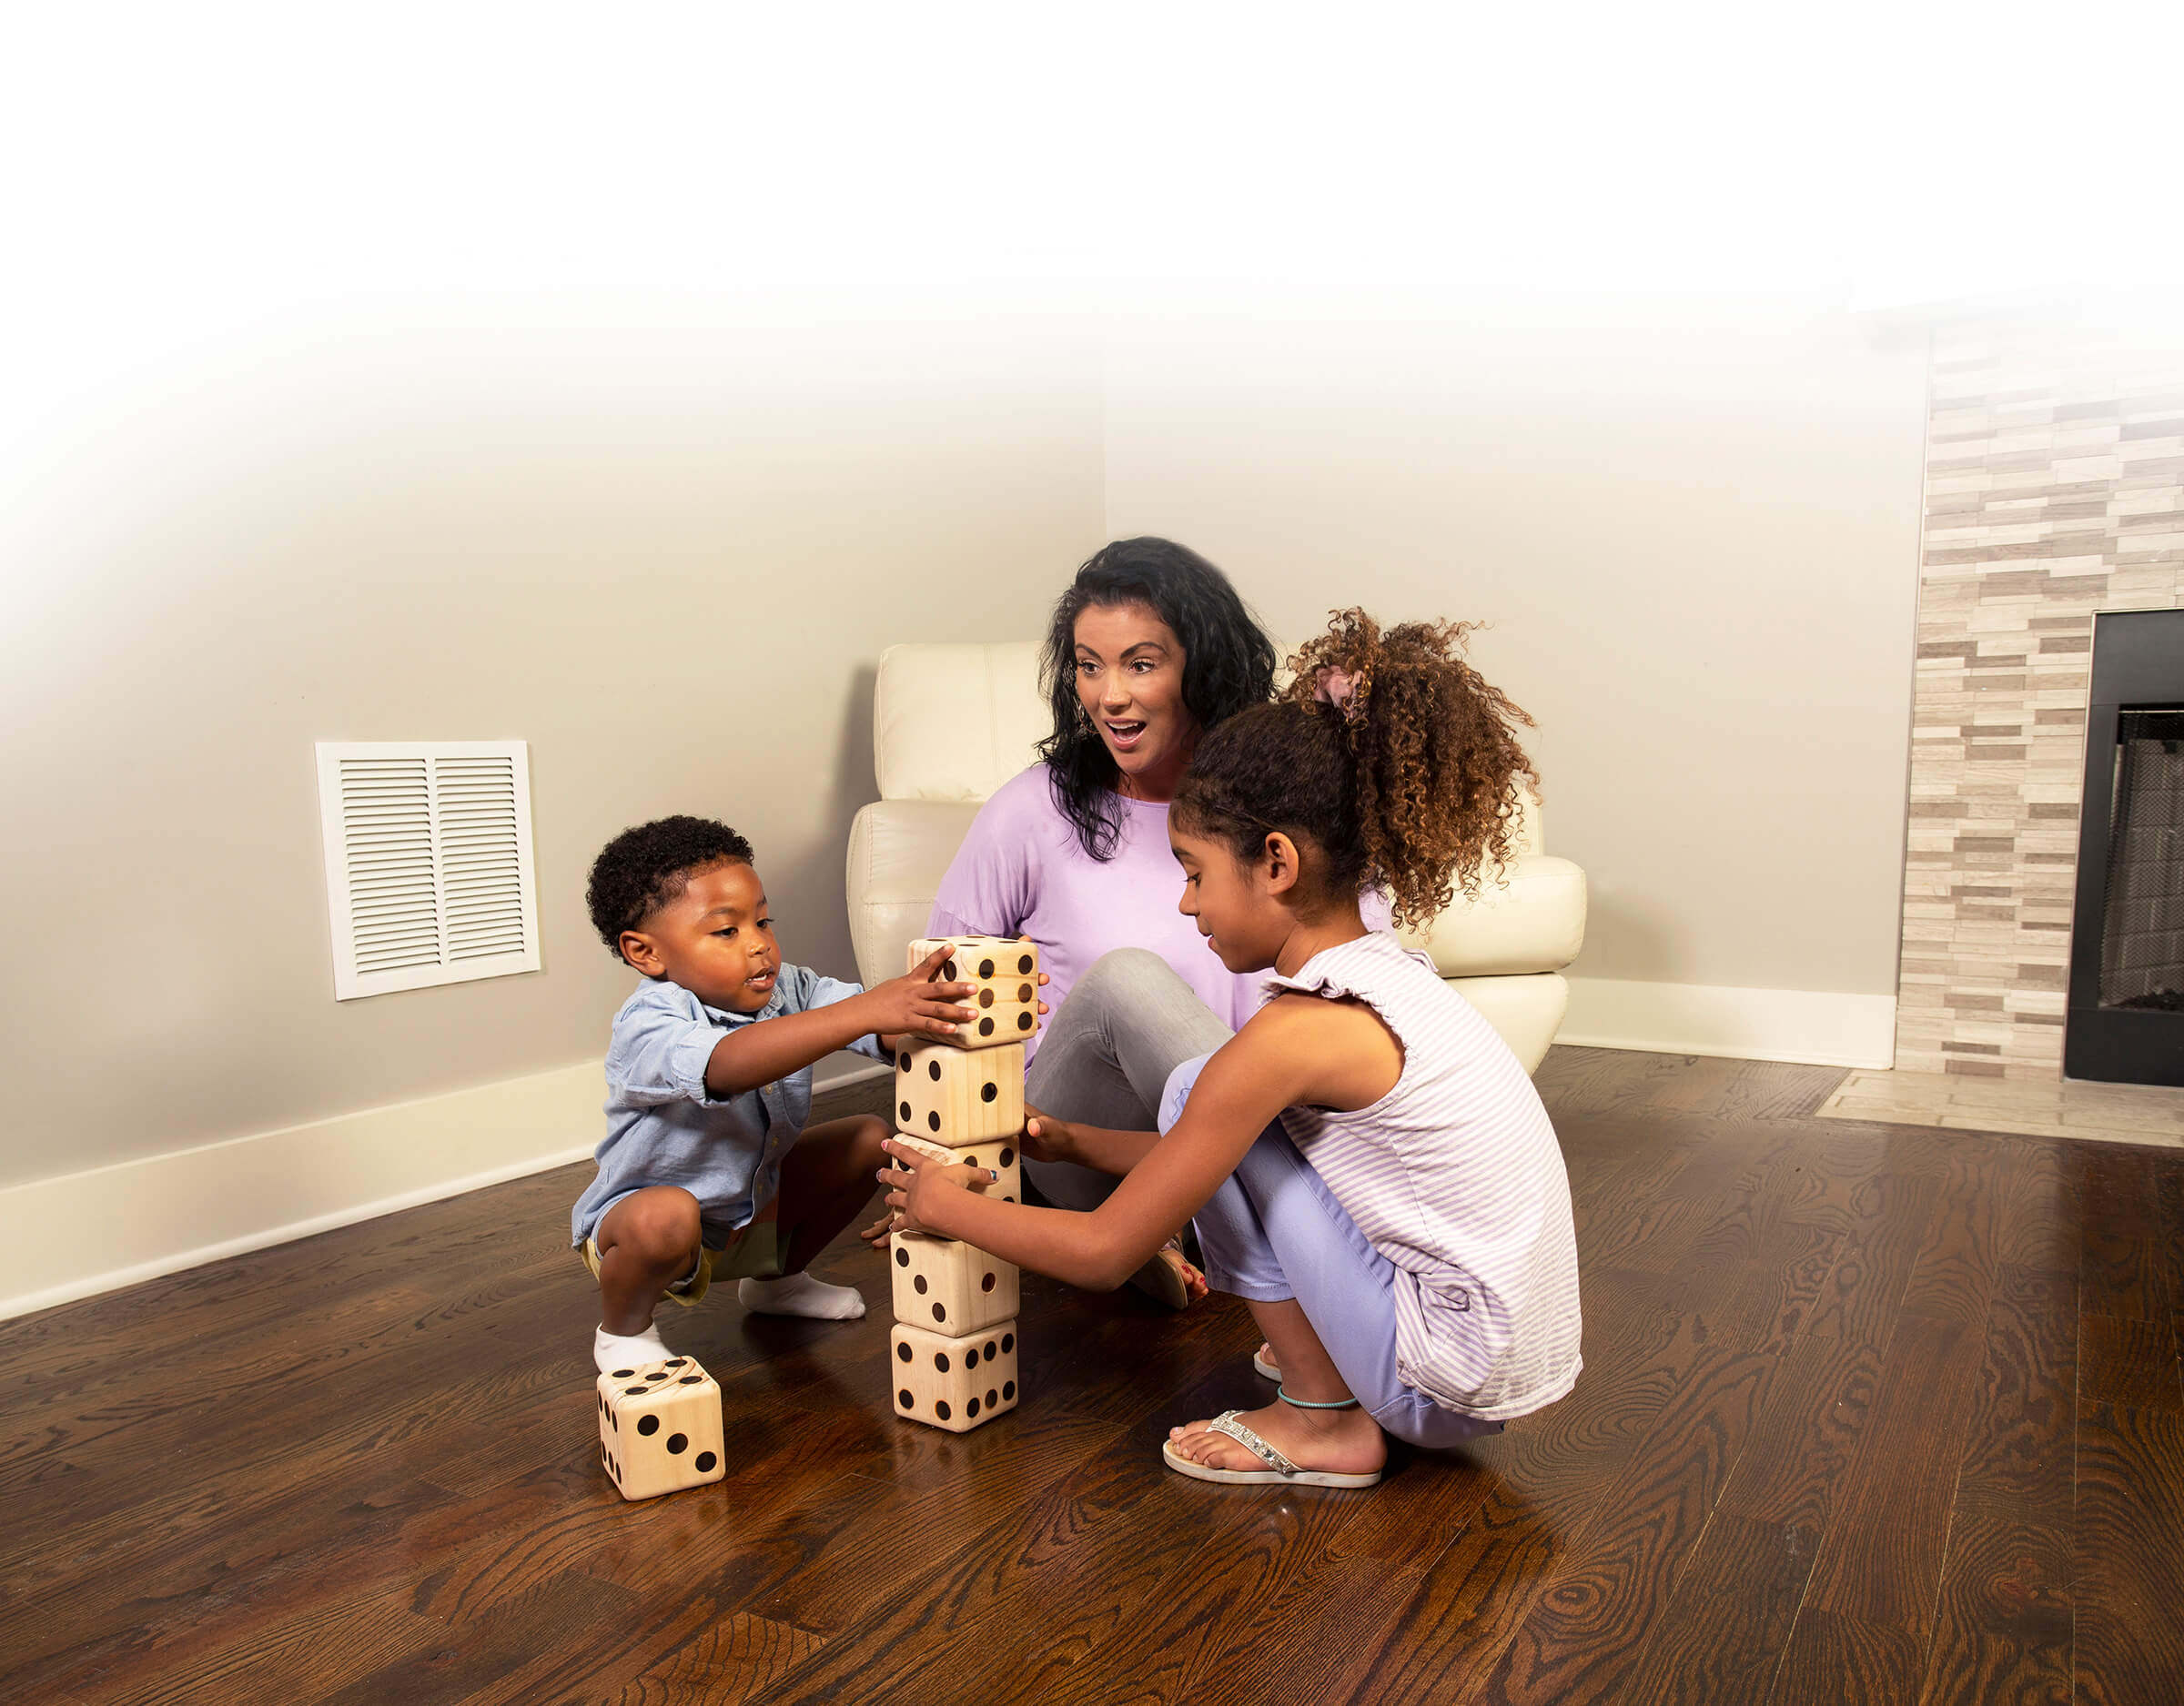 Mom and children playing on wood floors in Fort Smith